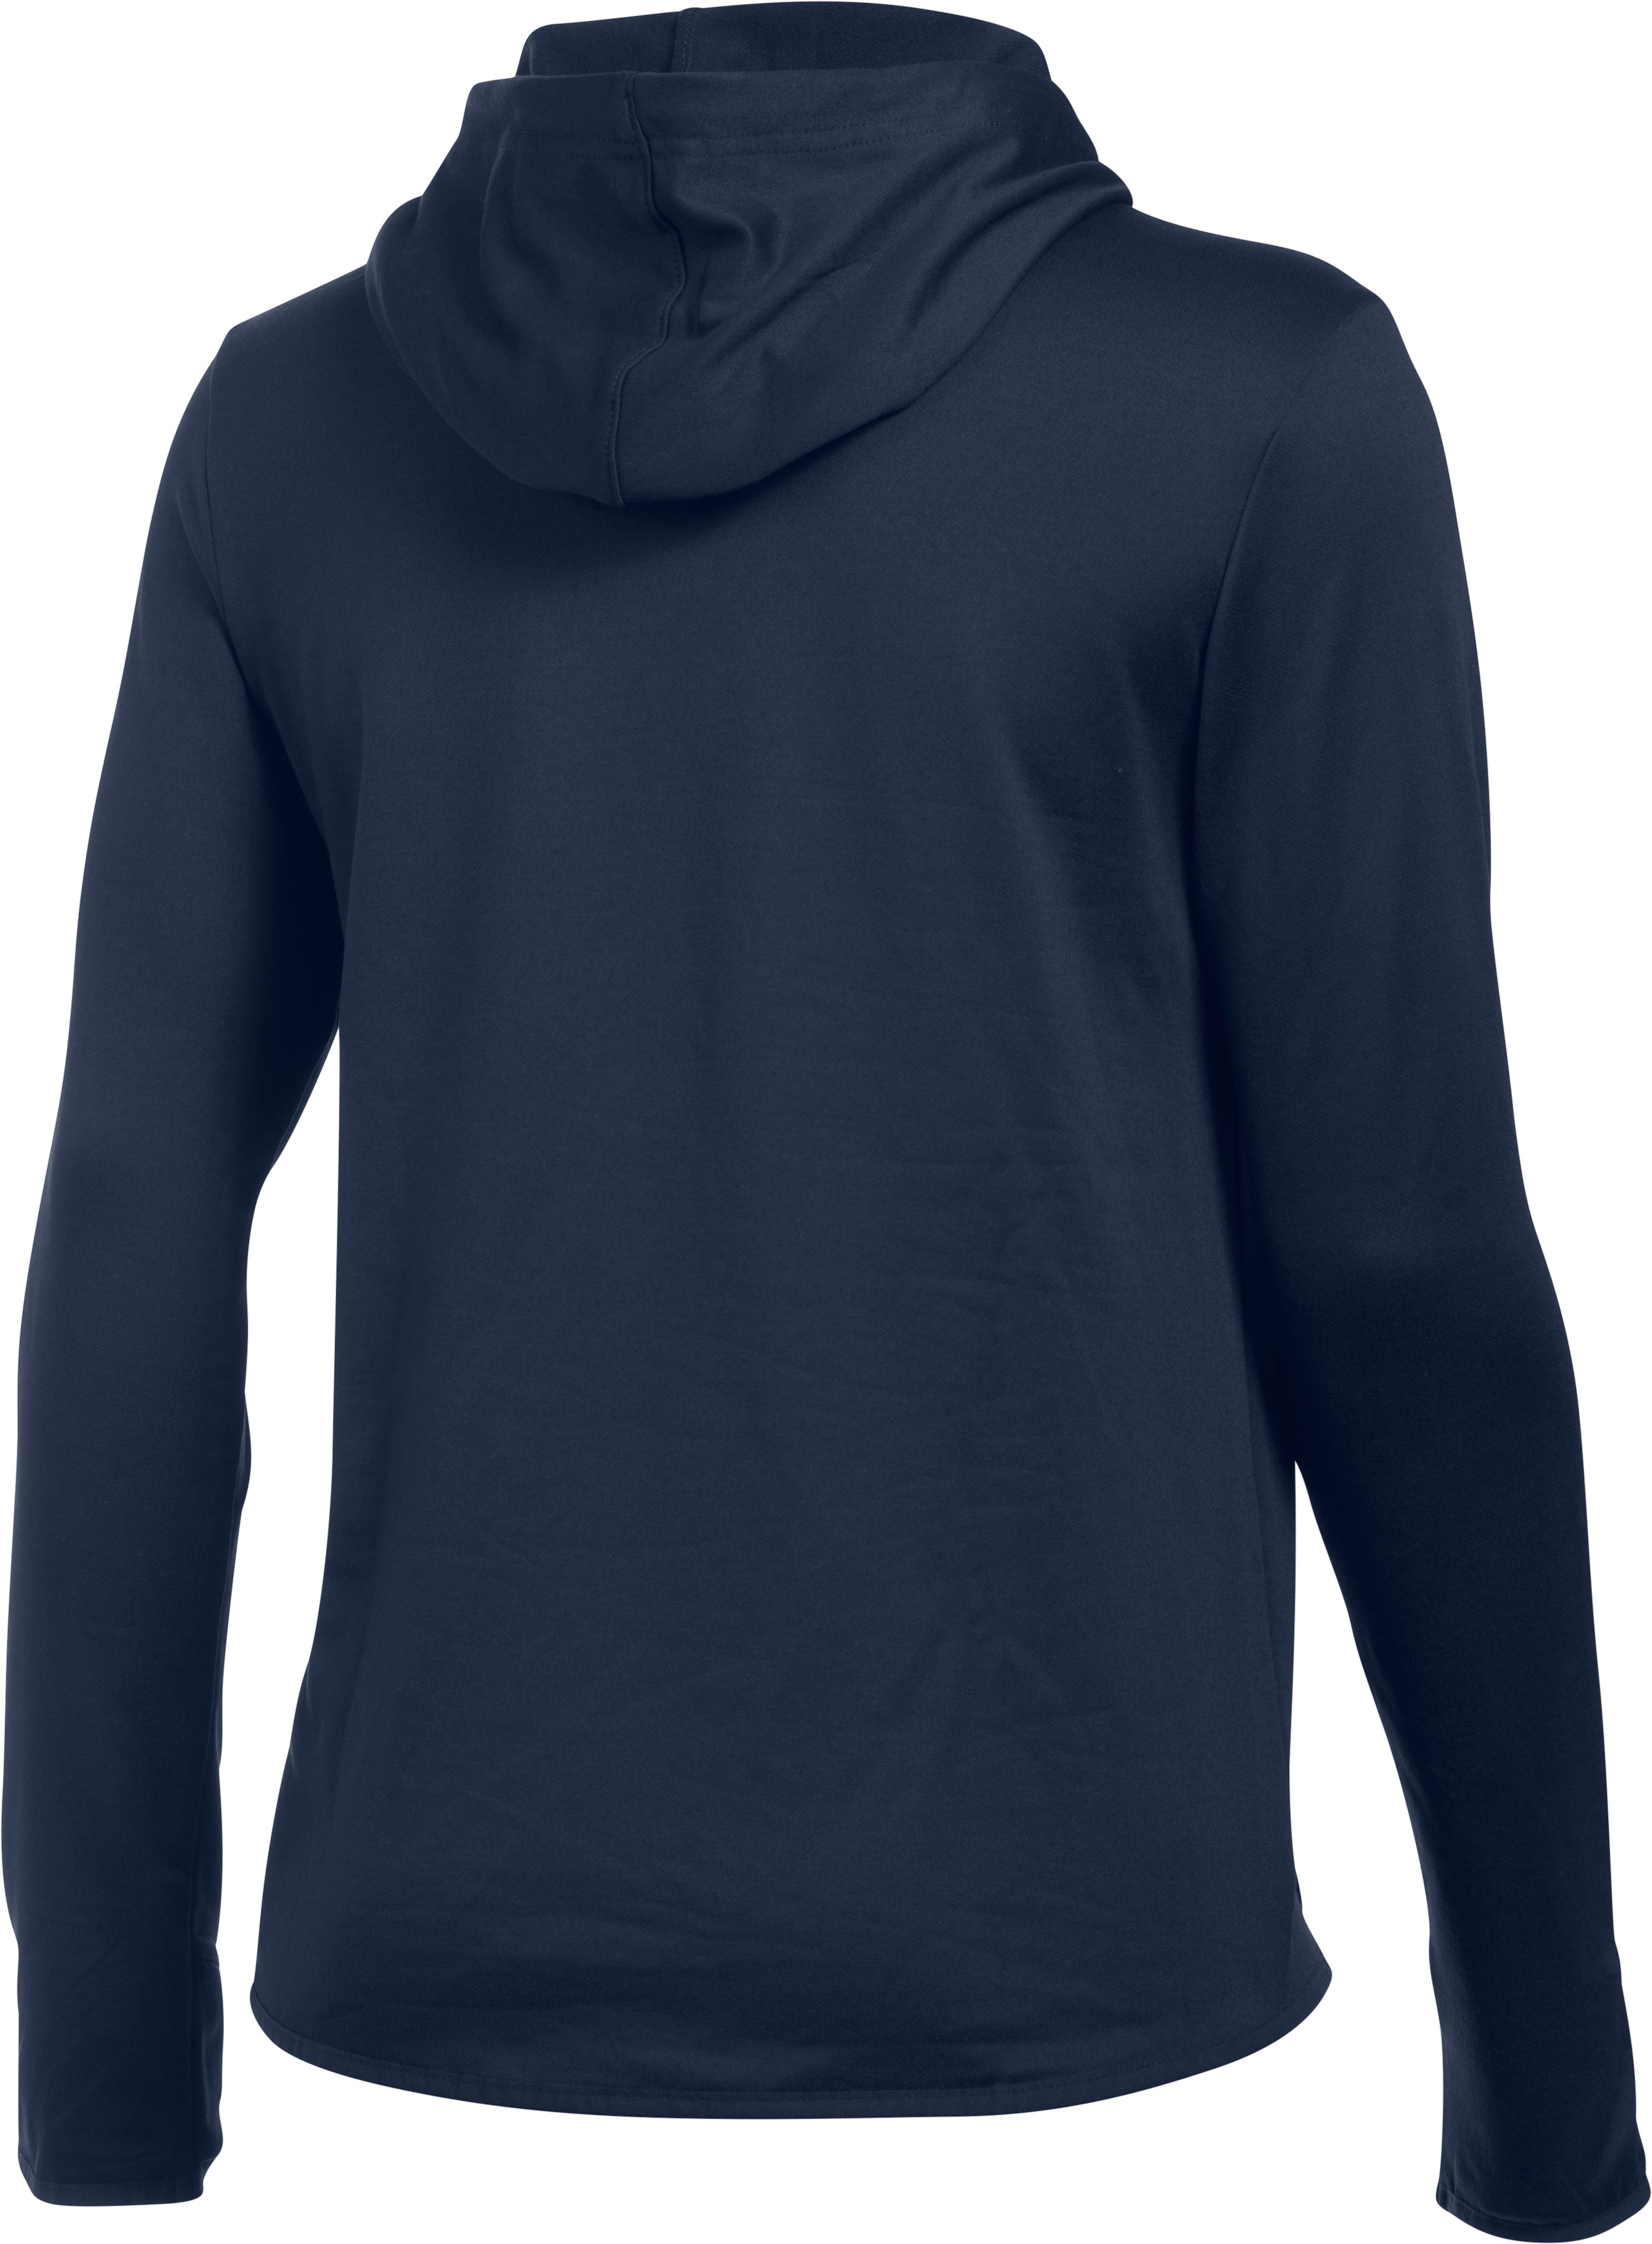 Women's Houston Astros UA French Terry Hoodie, Midnight Navy